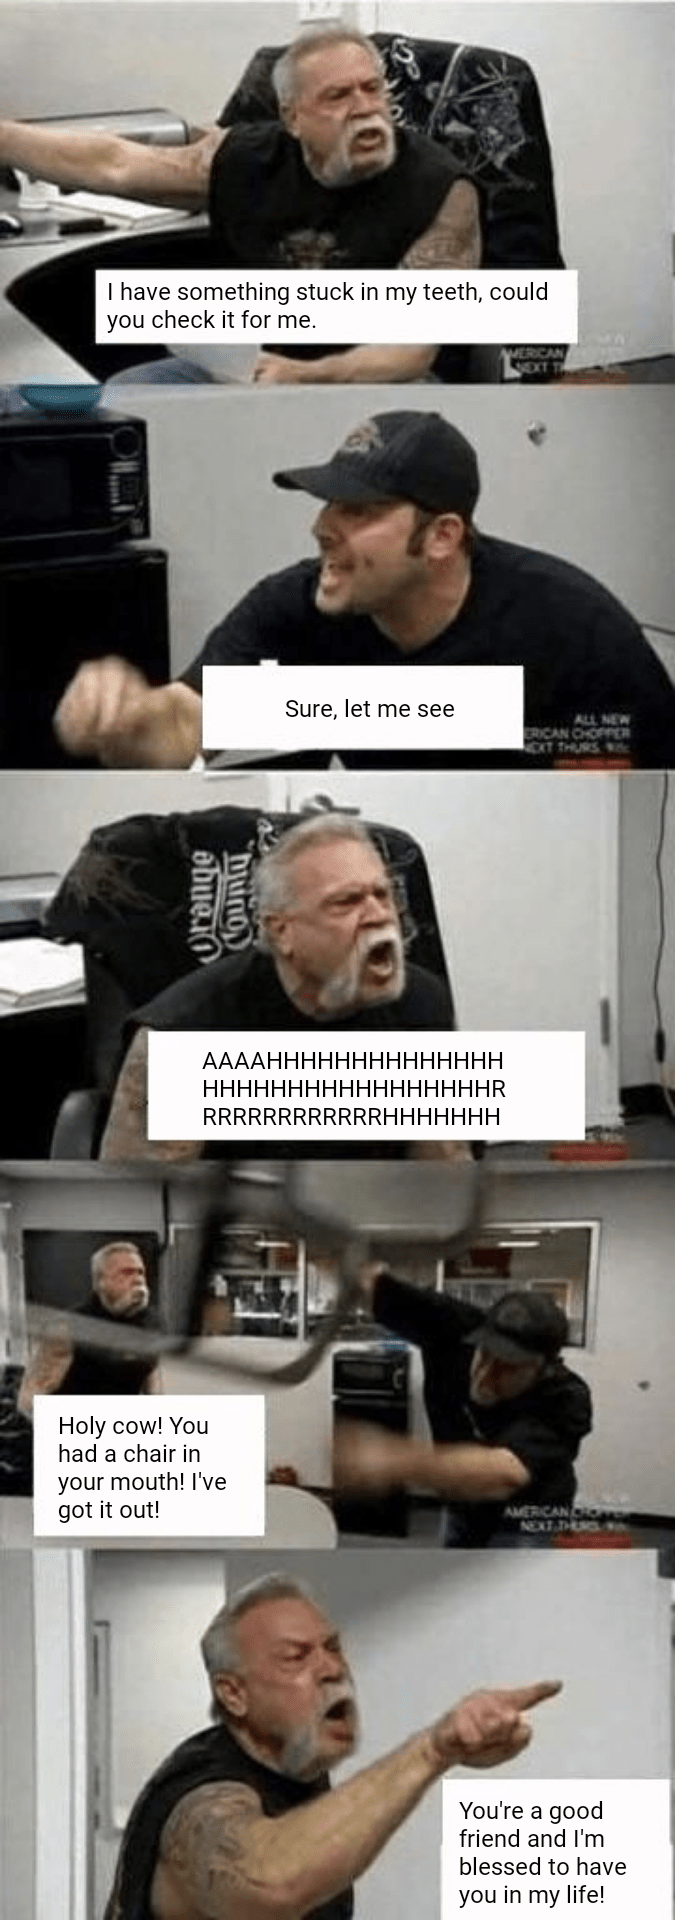 Funny american chopper meme about picking stuff out of a friend's teeth.